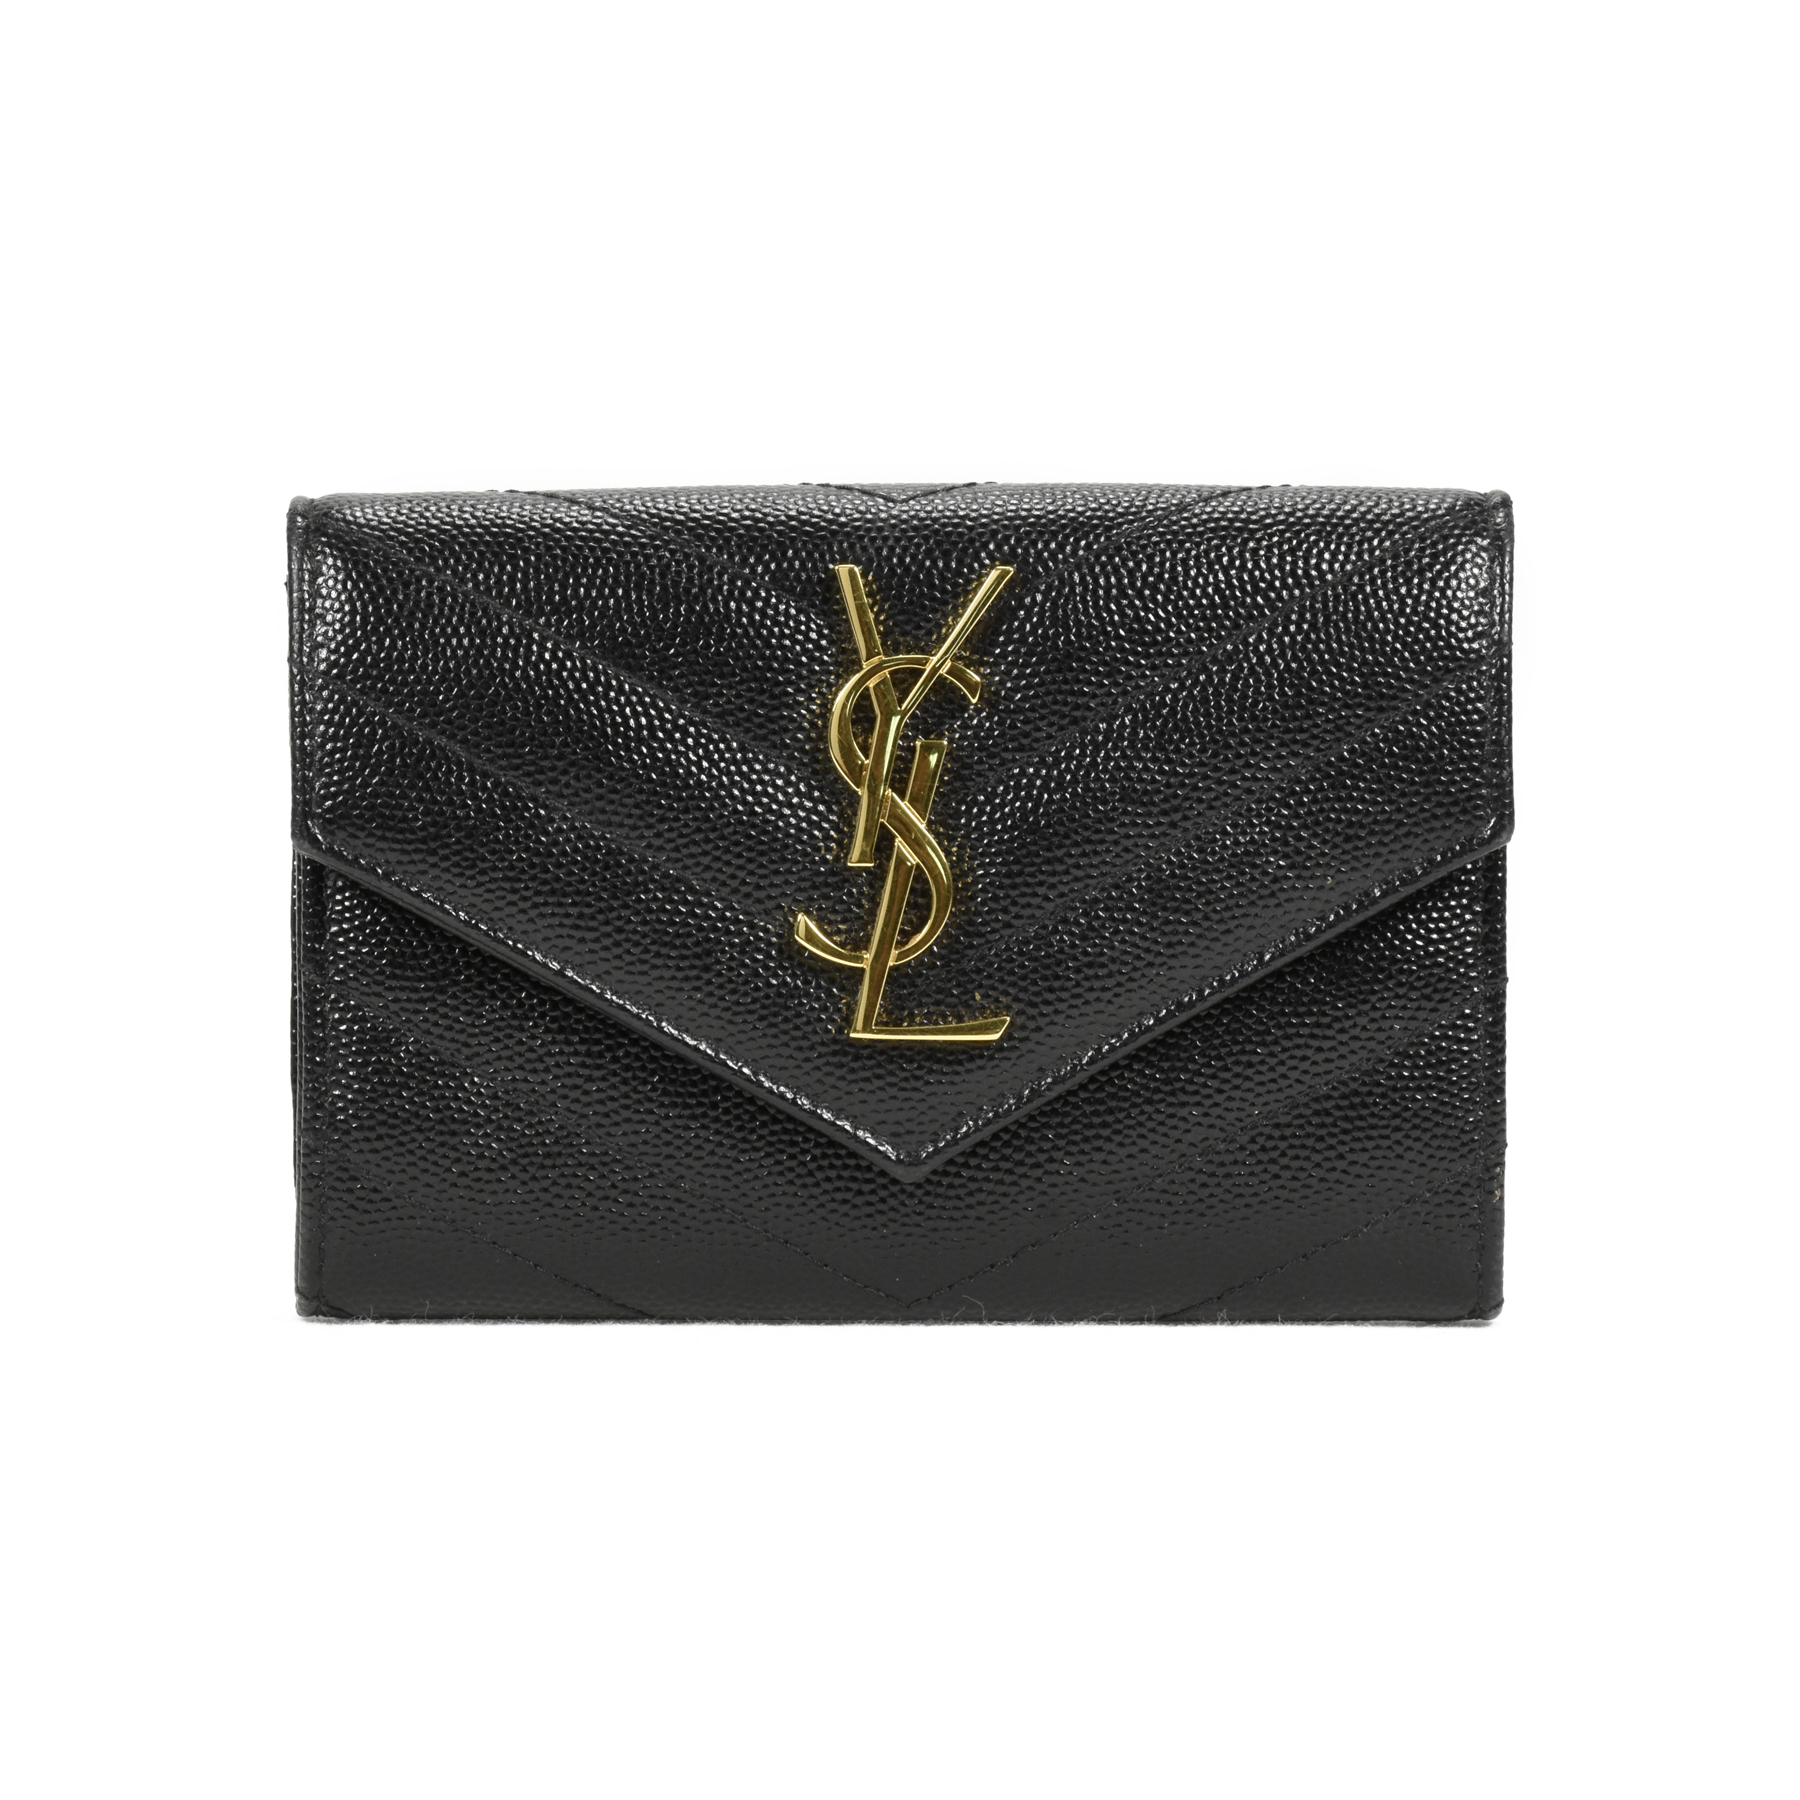 Buy Cheap Good Selling Saint Laurent small monogram envelope wallet The Cheapest Cheap Online Sale Online Cheap i9rk9tVw